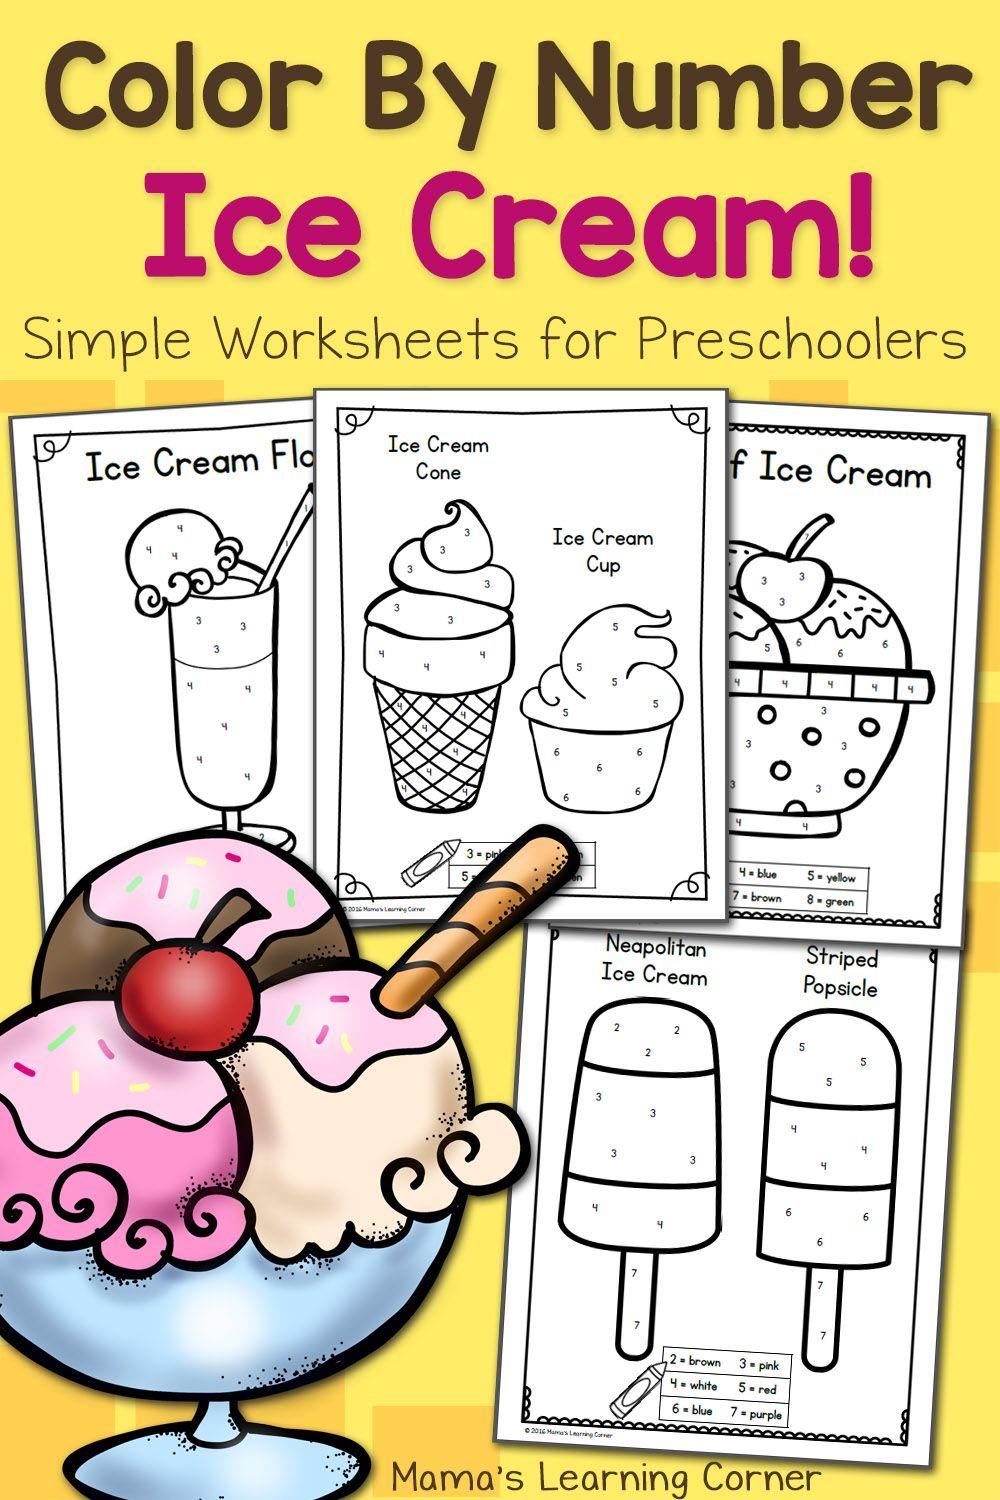 Color By Number Worksheets for Preschool Ice Cream! Ice